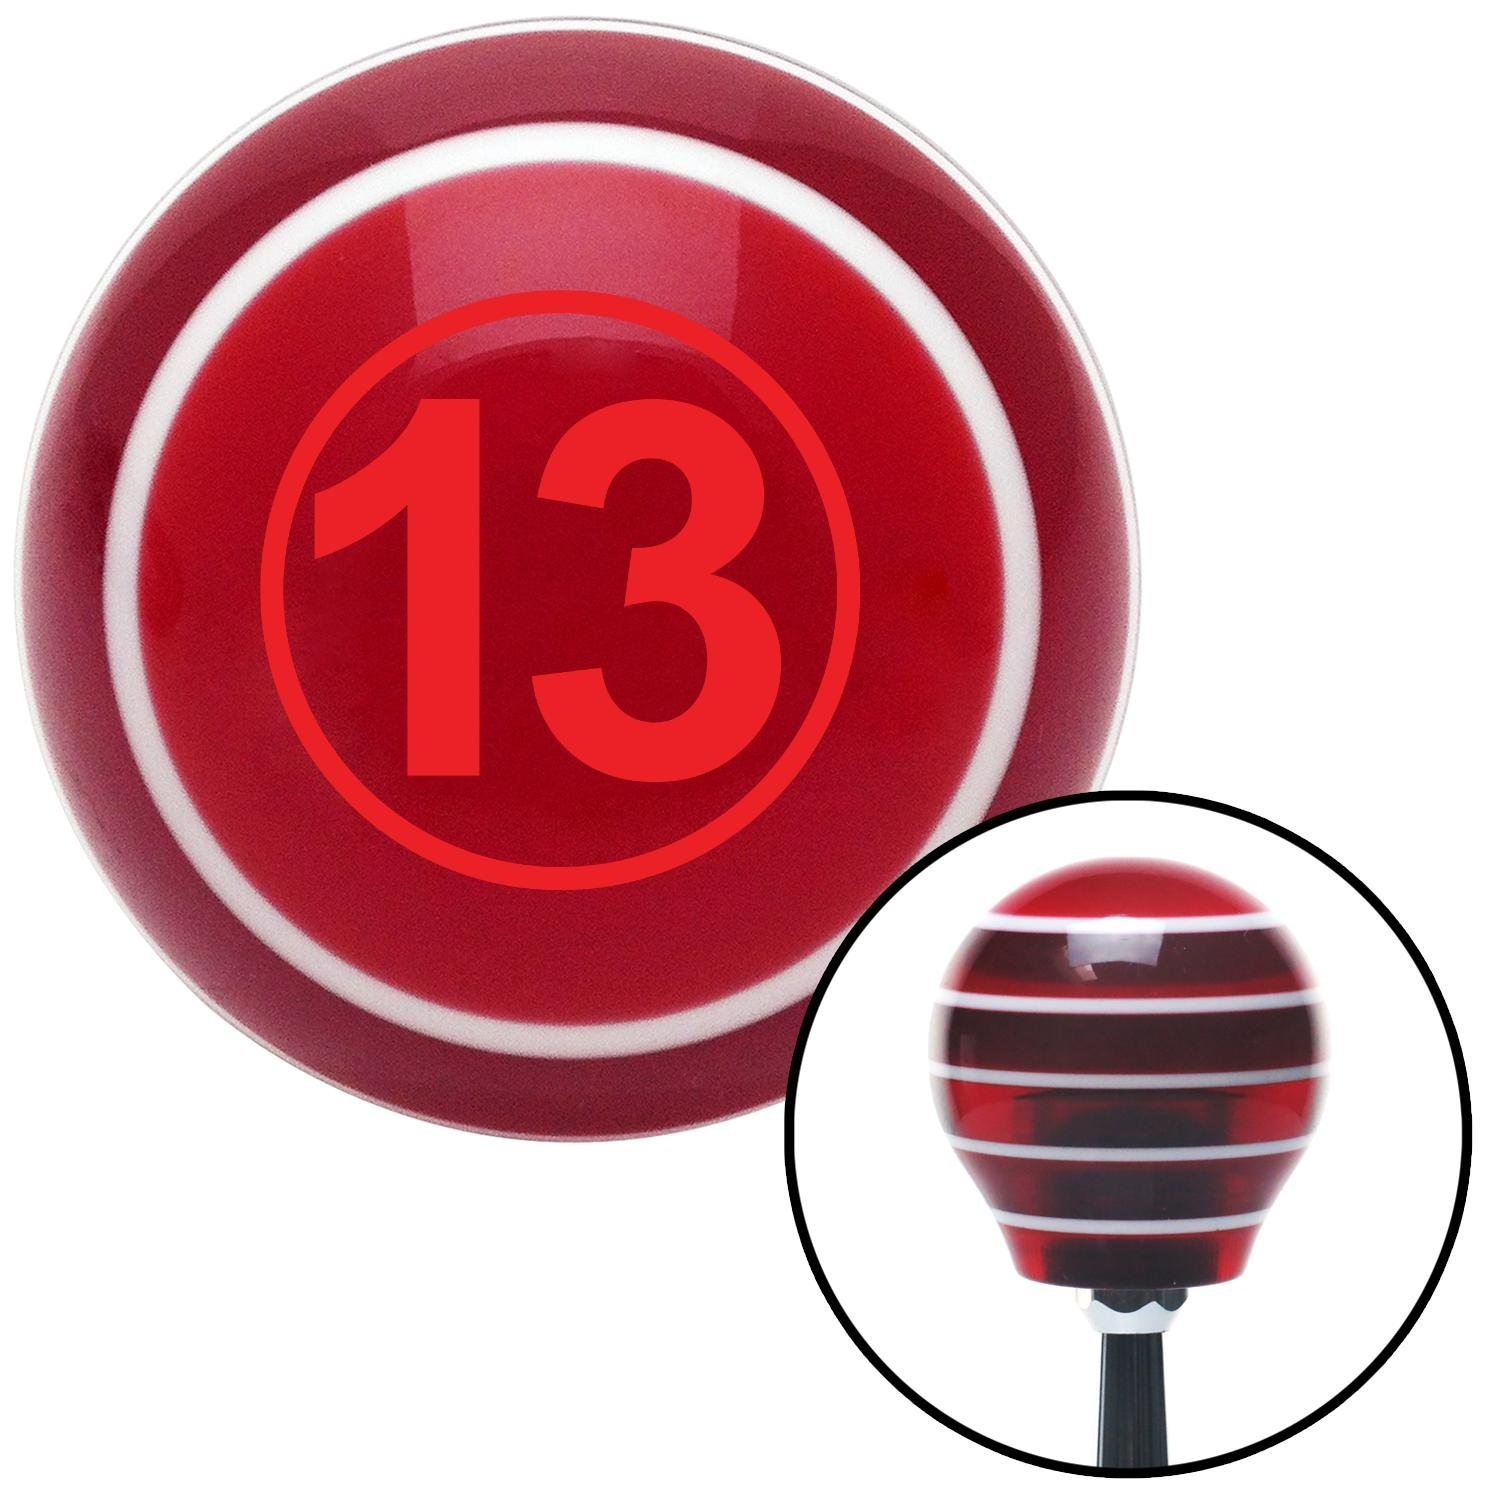 American Shifter 112280 Red Stripe Shift Knob with M16 x 1.5 Insert Red Ball #13